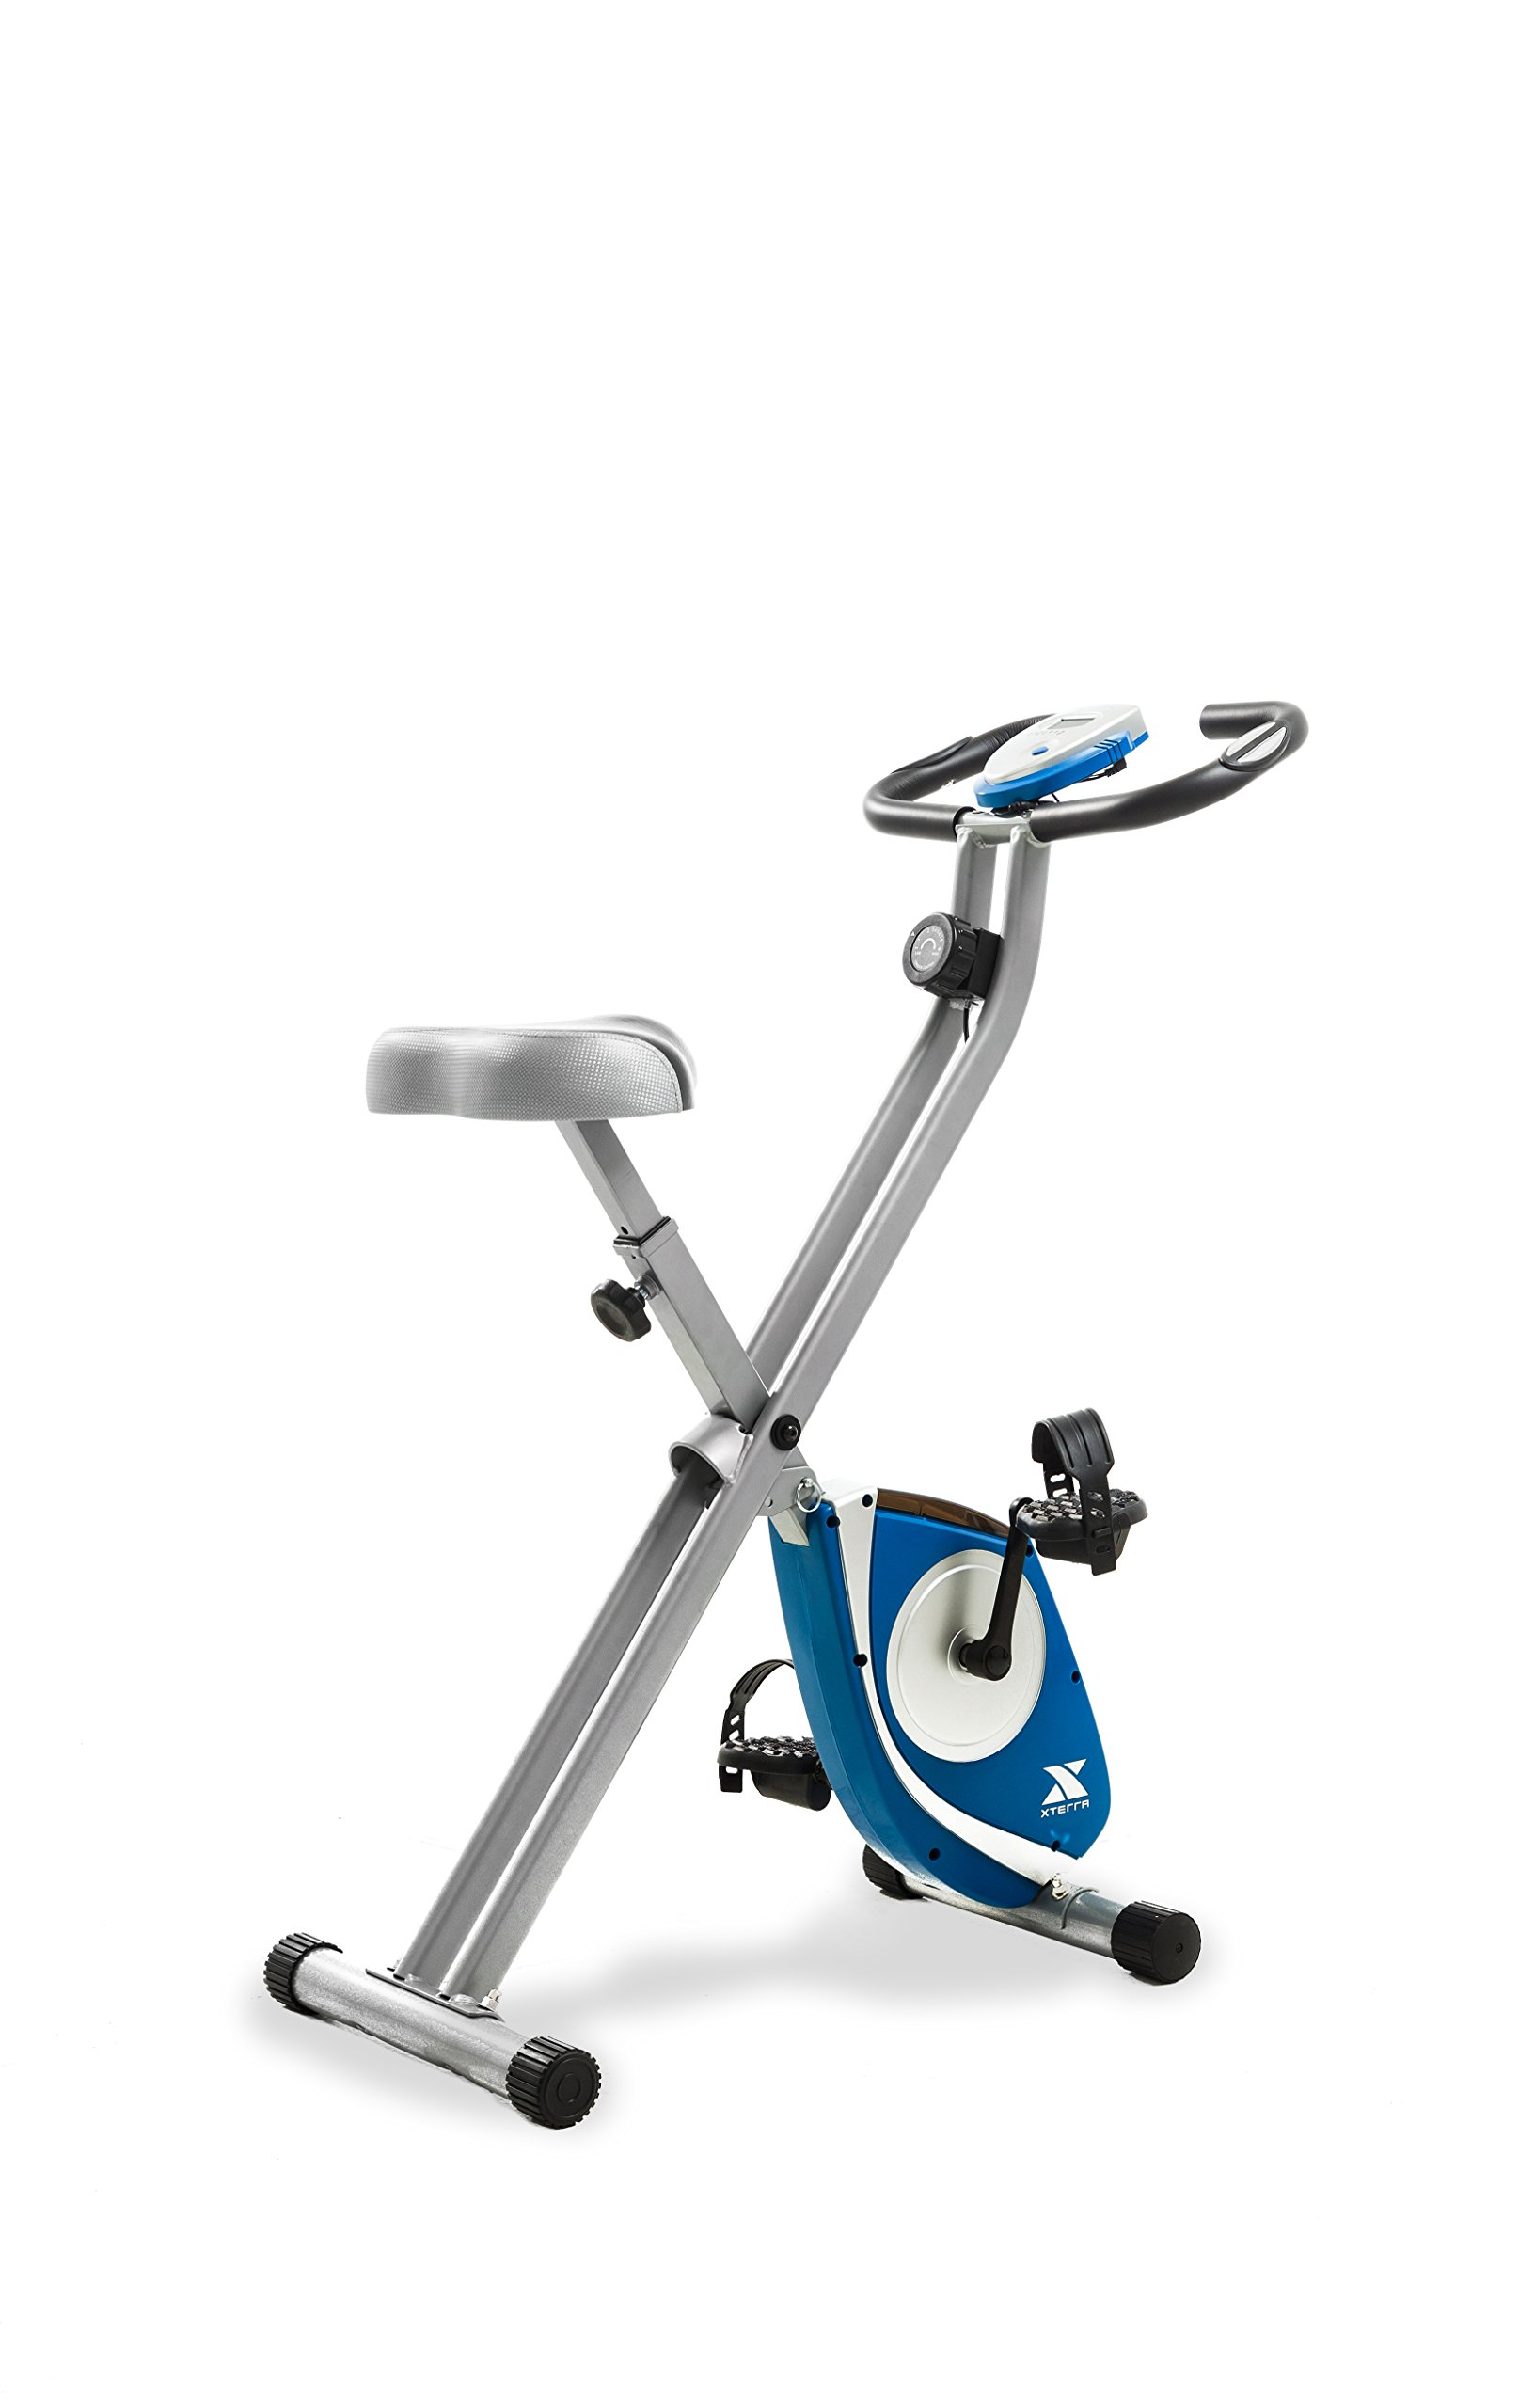 XTERRA Fitness FB150 Folding Exercise Bike, Silver by XTERRA Fitness (Image #2)